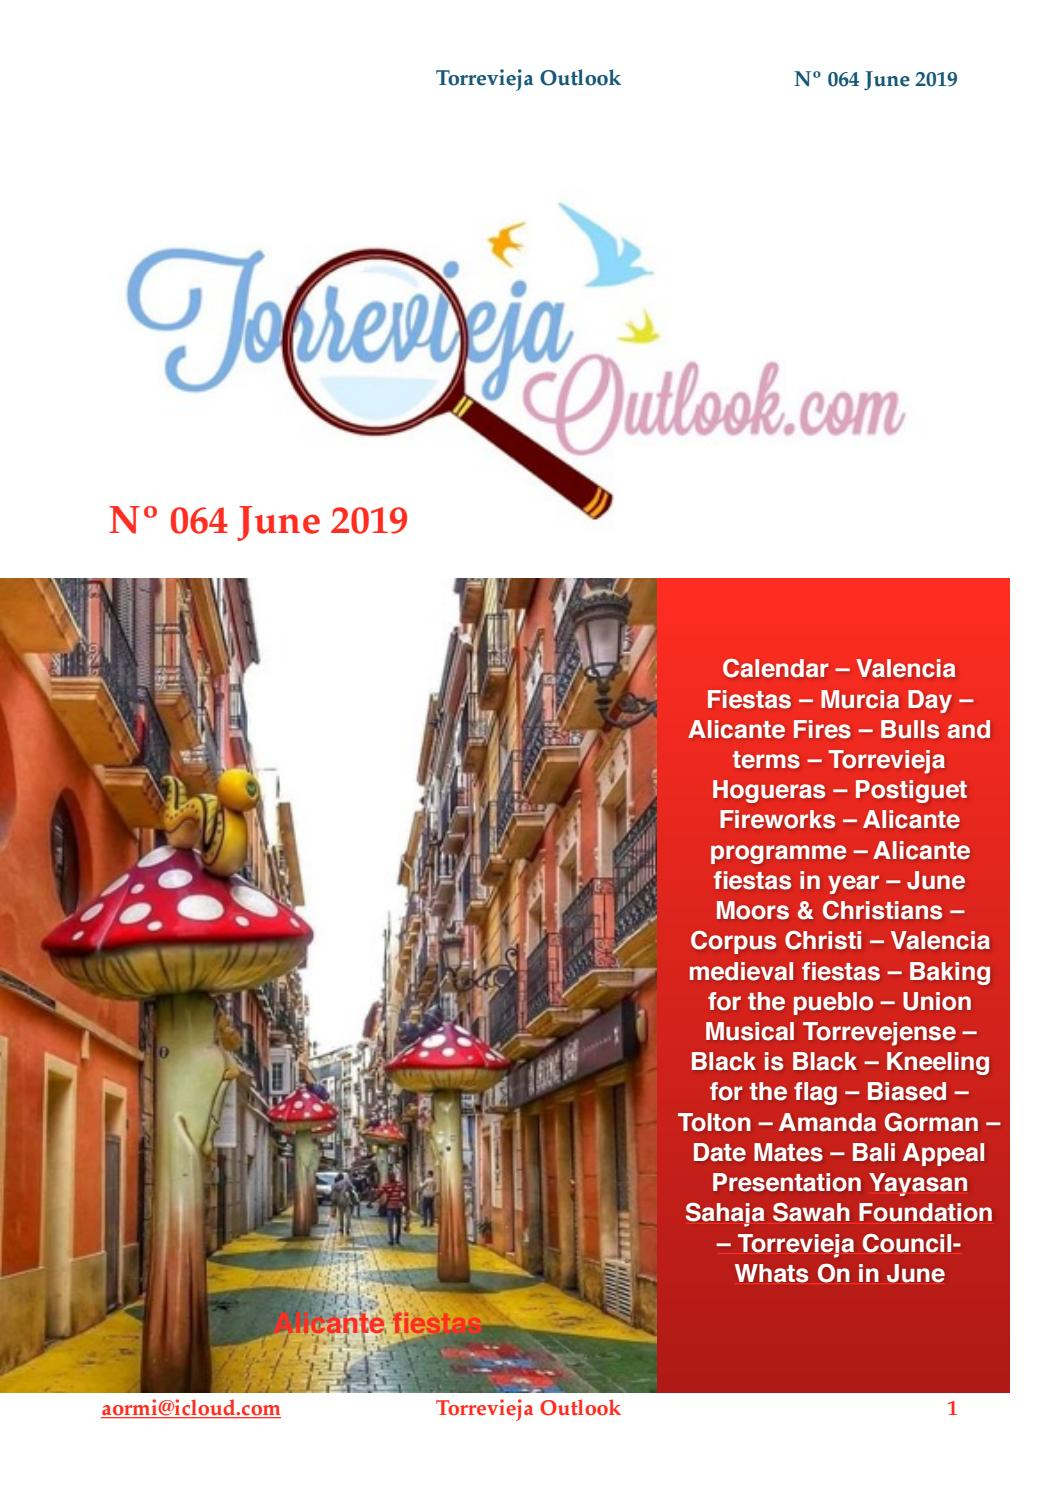 June 2019, 064 Torrevieja Outlook by Andy Ormiston - issuu